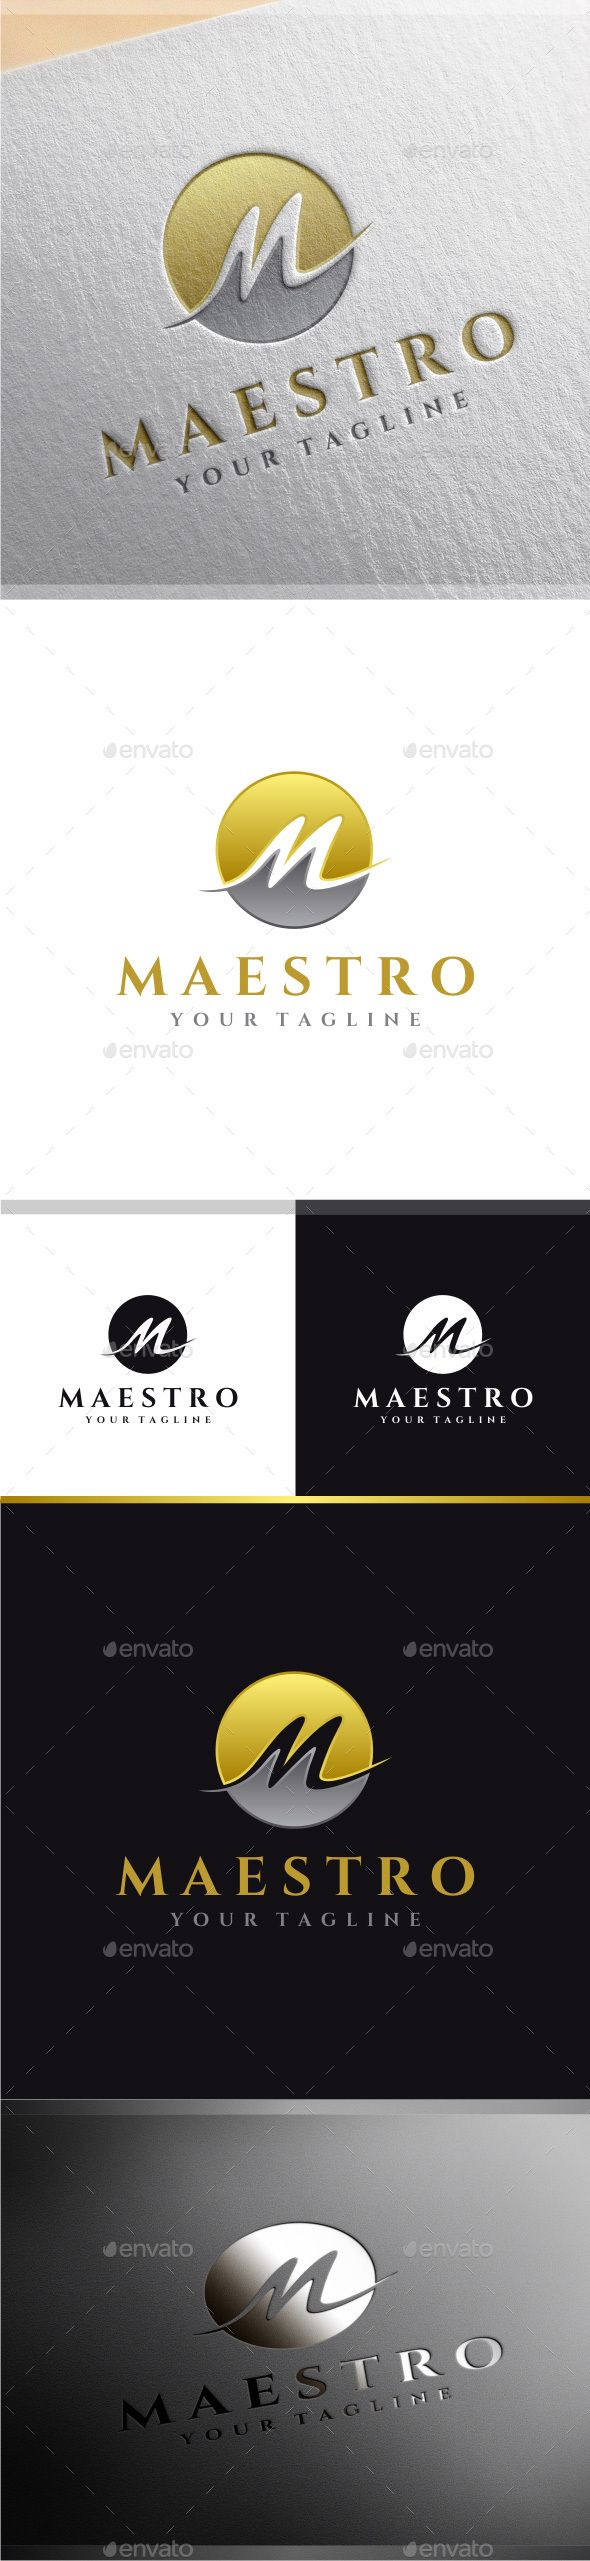 Maestro  Letter M Logo — Photoshop PSD #silver #design • Available here → https://graphicriver.net/item/maestro-letter-m-logo/8990017?ref=pxcr